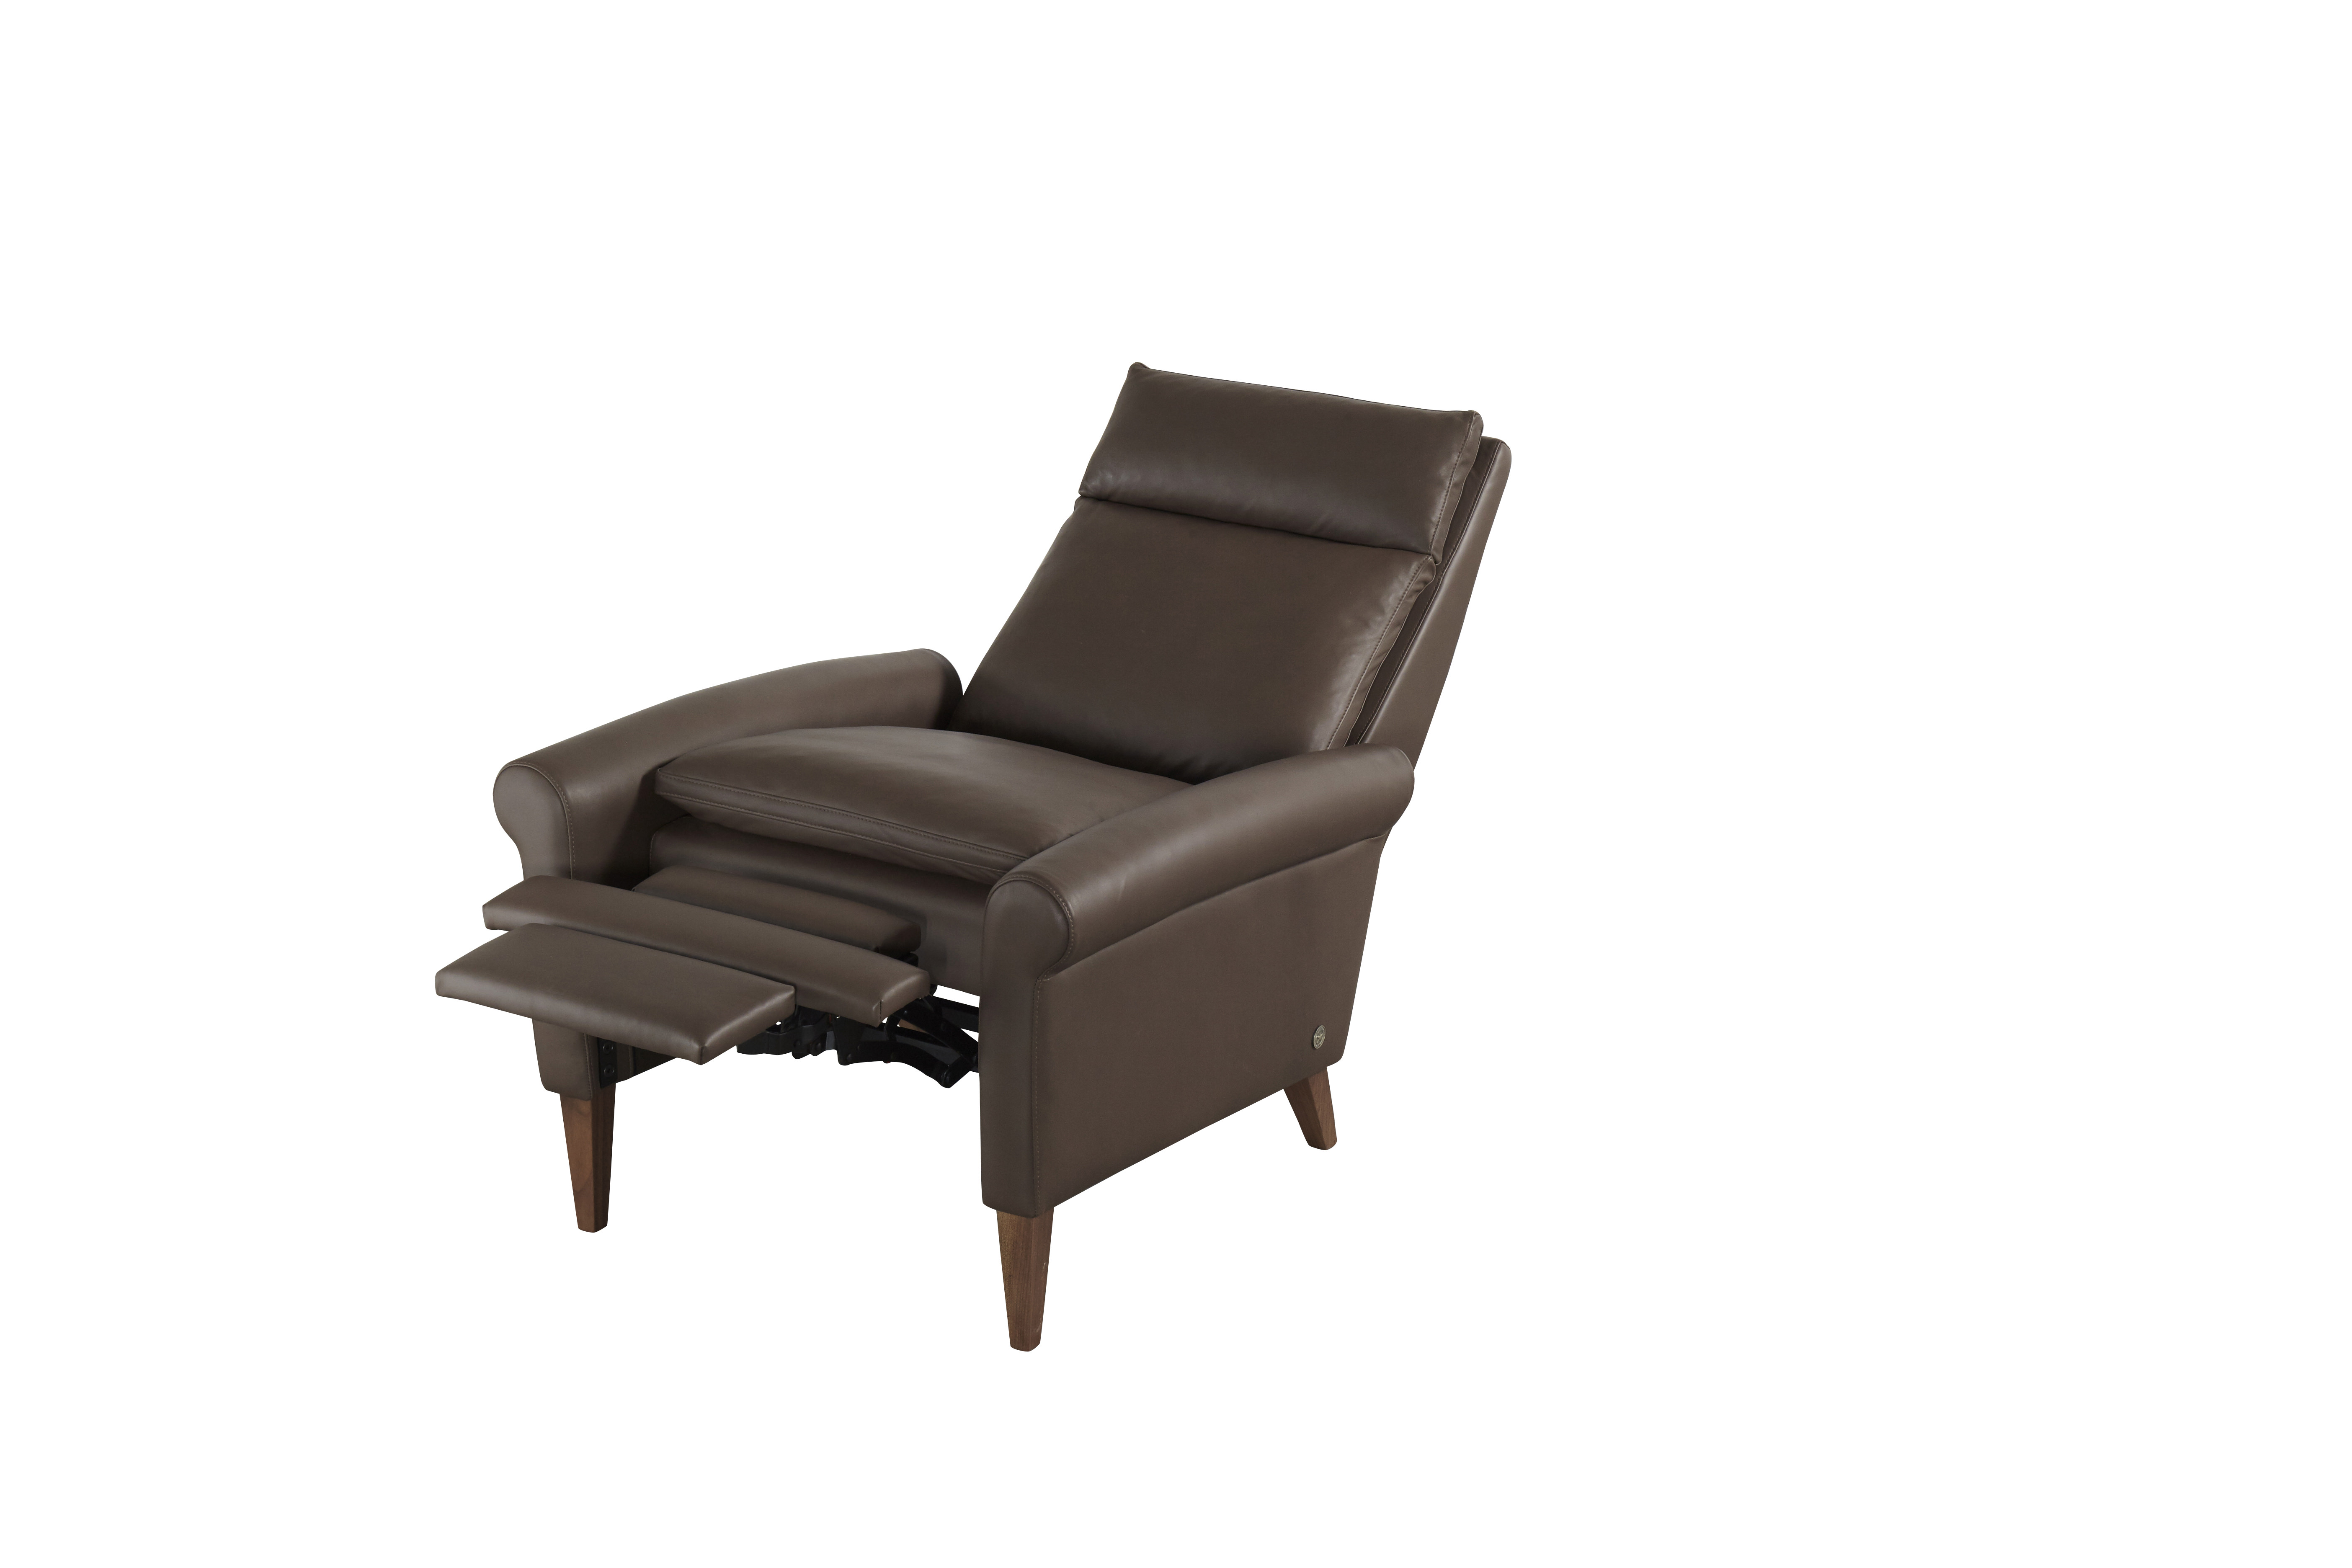 Amazing Burke Recliner Front Open David Chase Furniture And Design Cjindustries Chair Design For Home Cjindustriesco